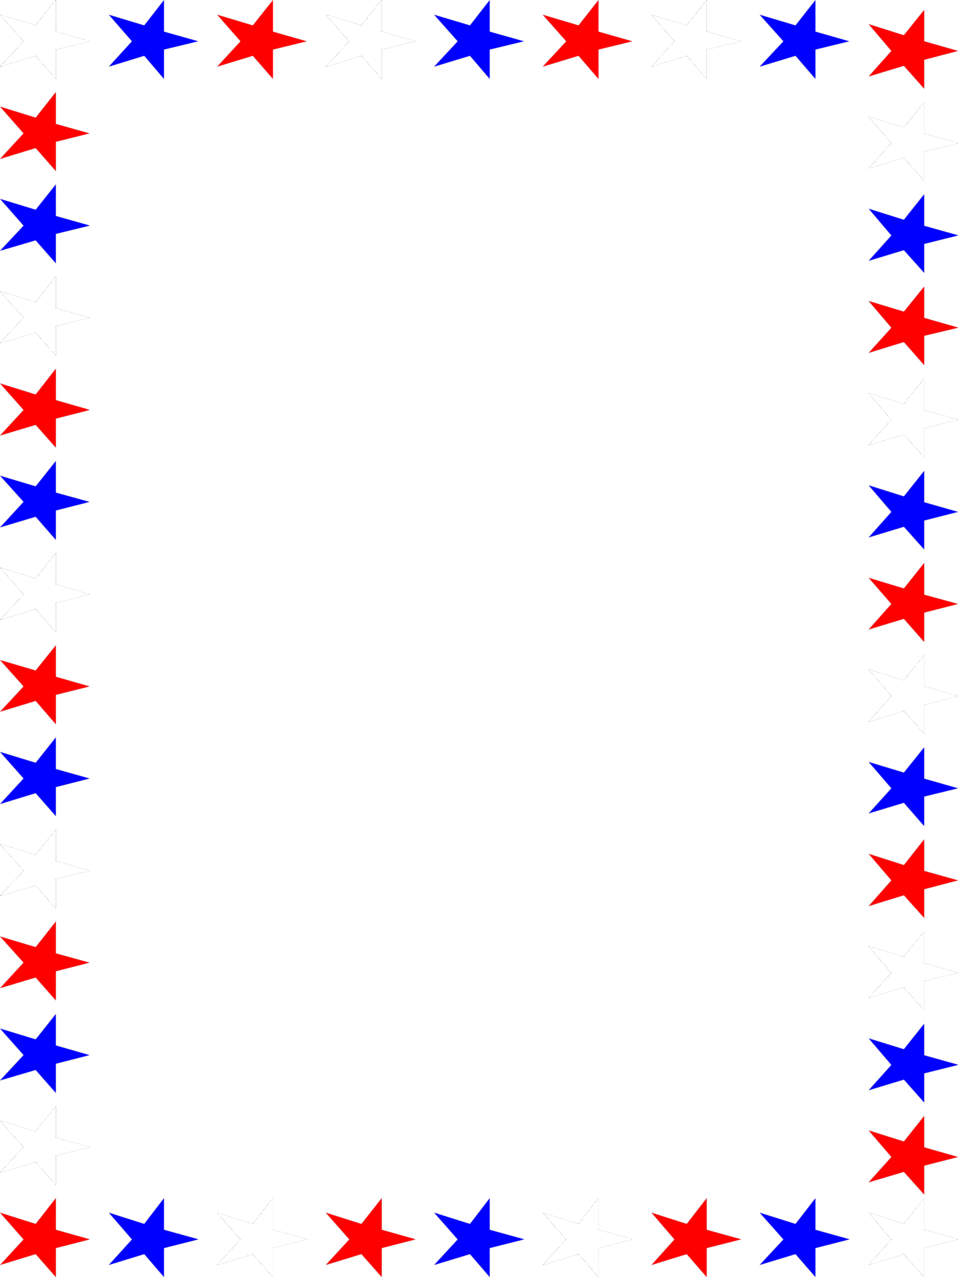 Red white and blue stars png. Illustration of a